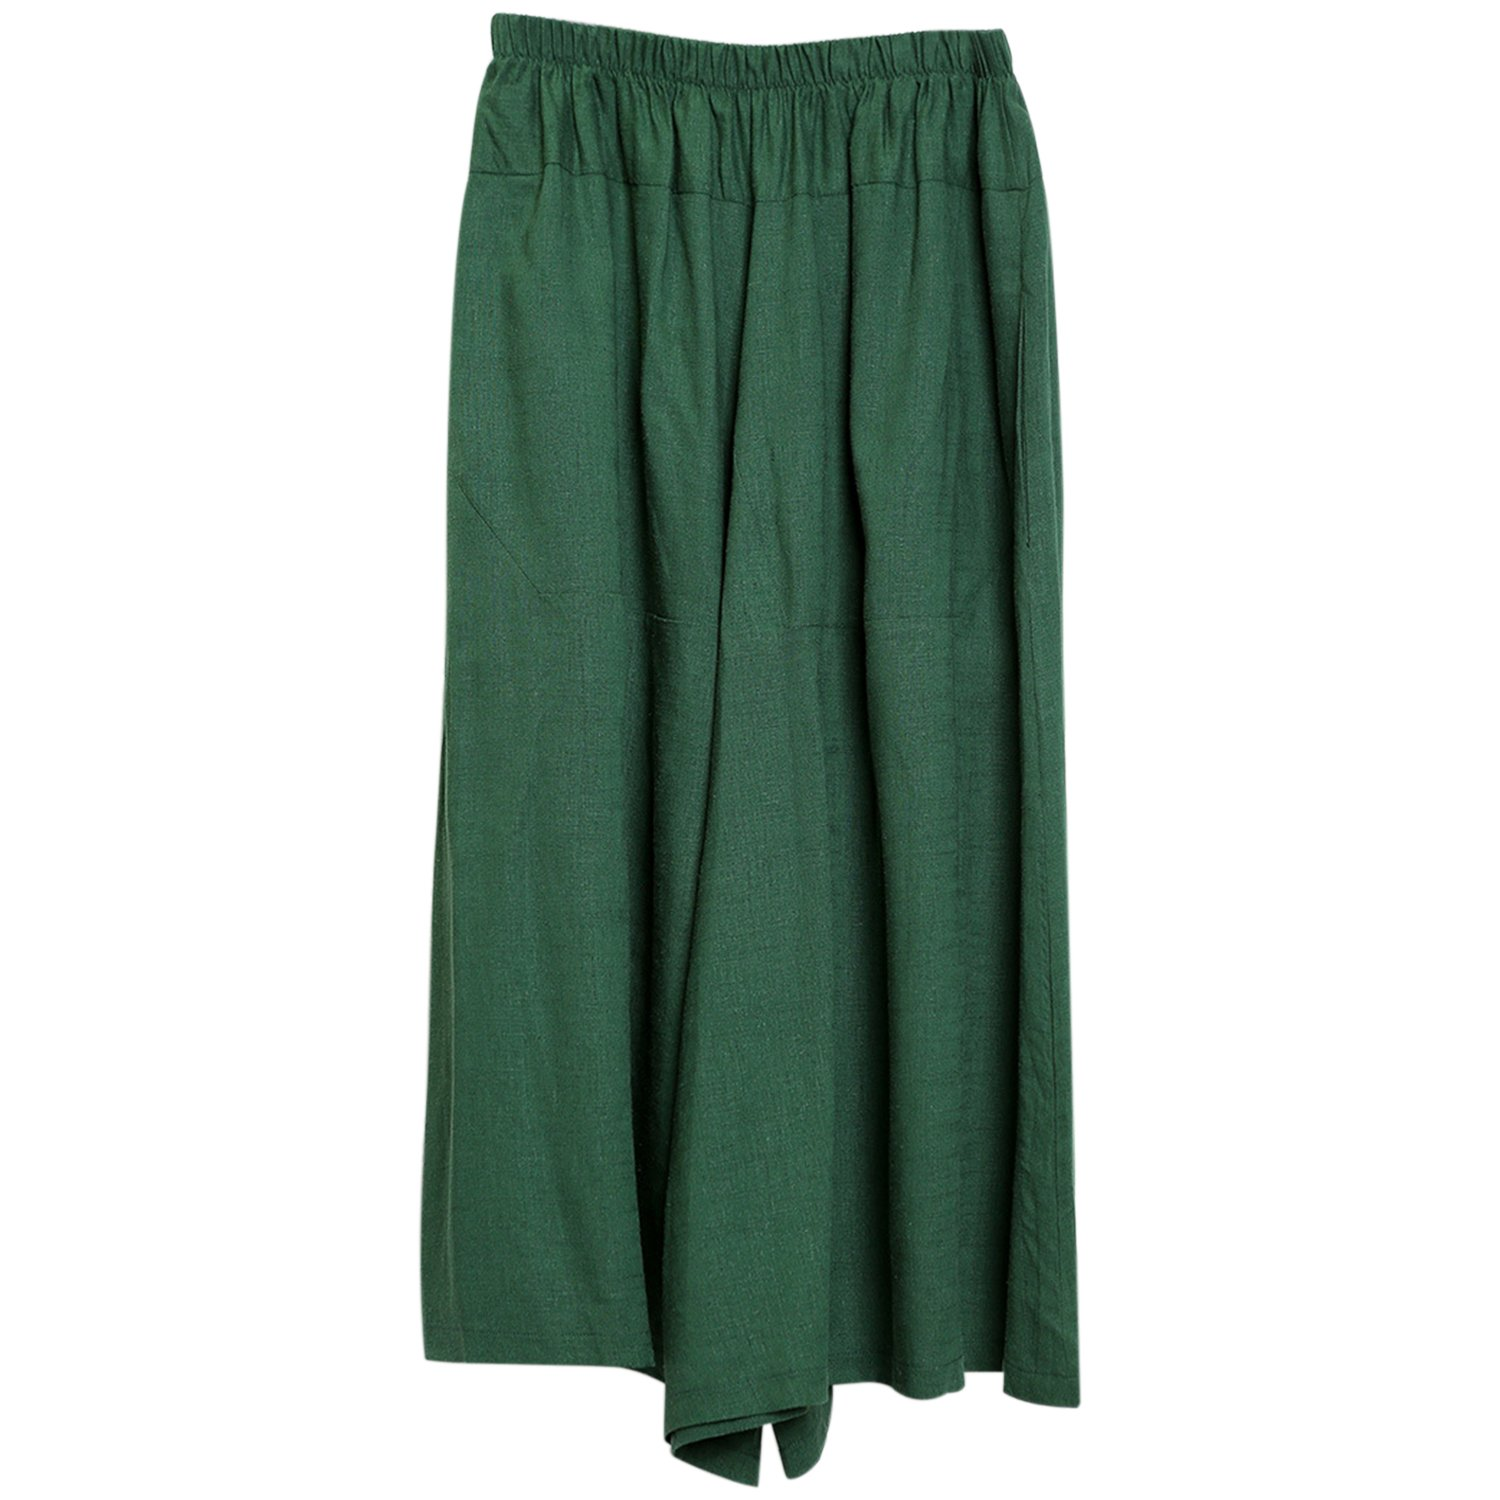 Fashion Story Women's New Elastic Waist Wide Leg Pants With Pockets Summer Casual Pants Green by Fashion Story